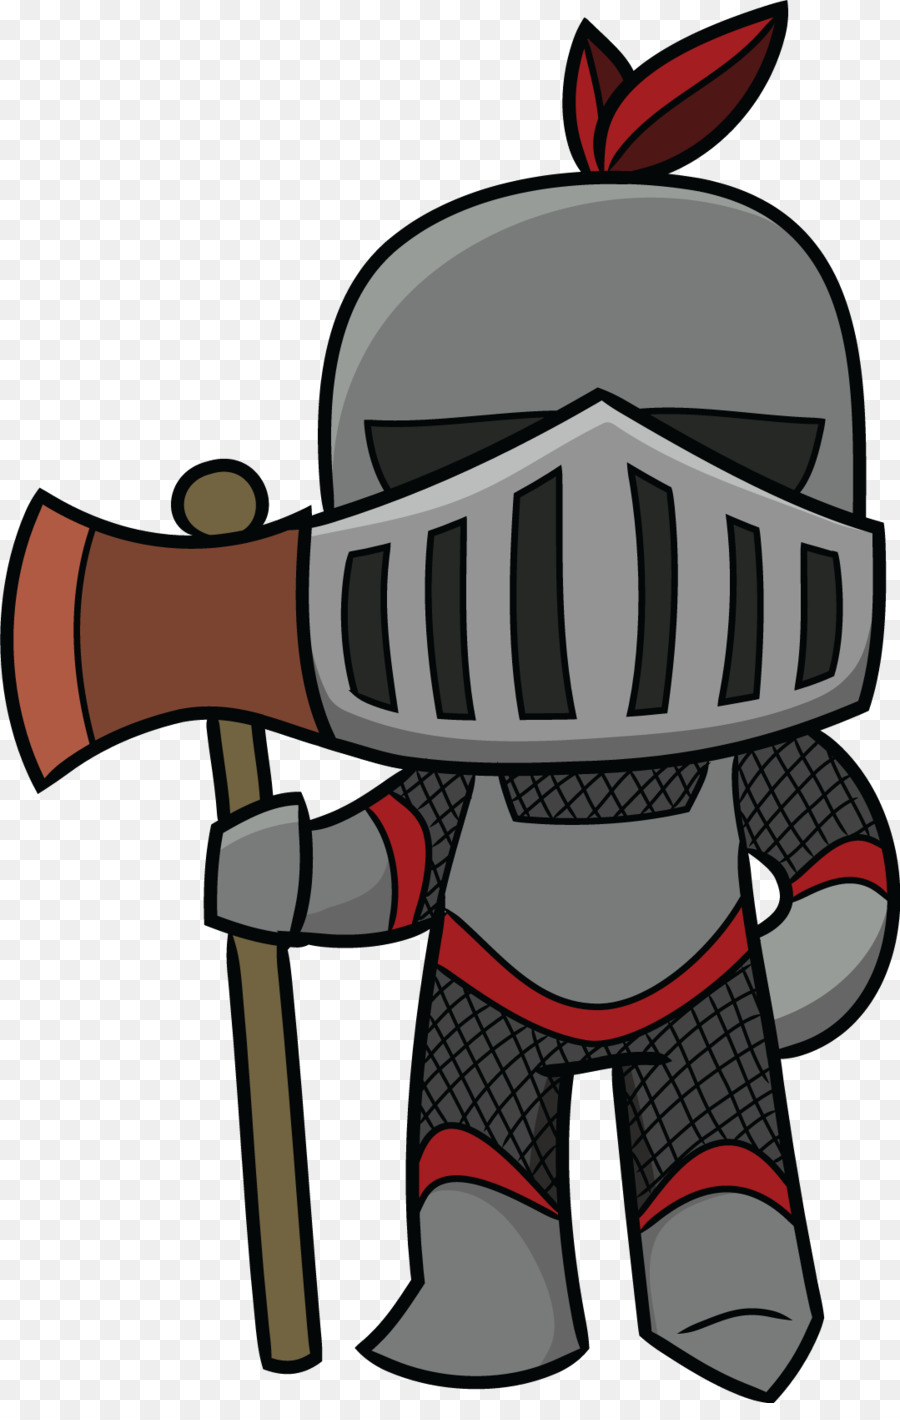 Middle ages knight cartoon. 3 clipart knights